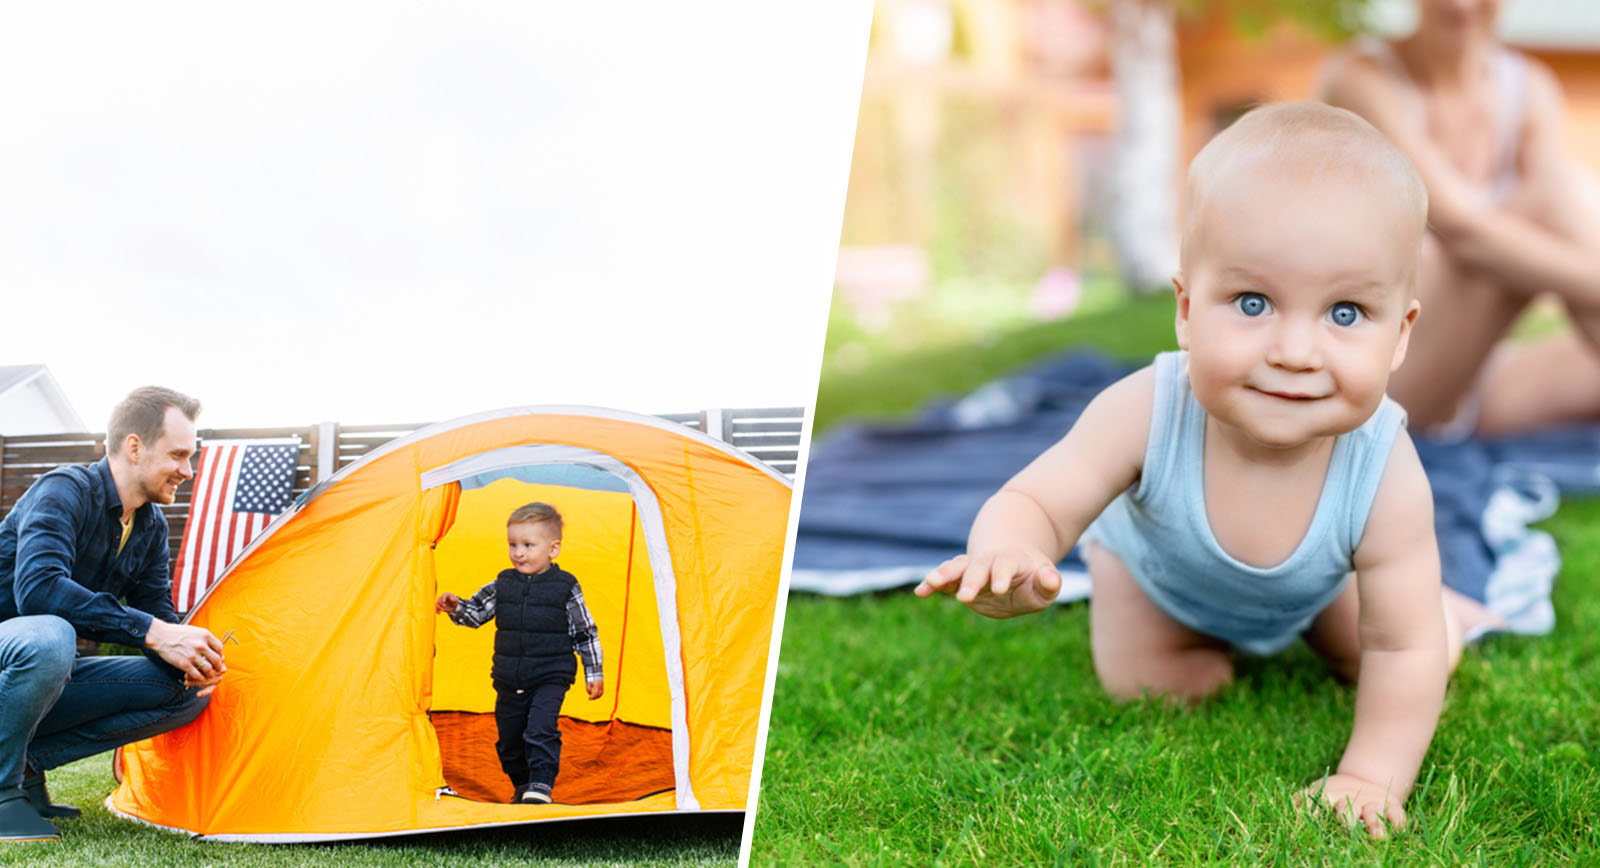 pelican consumer blog camping with baby tips